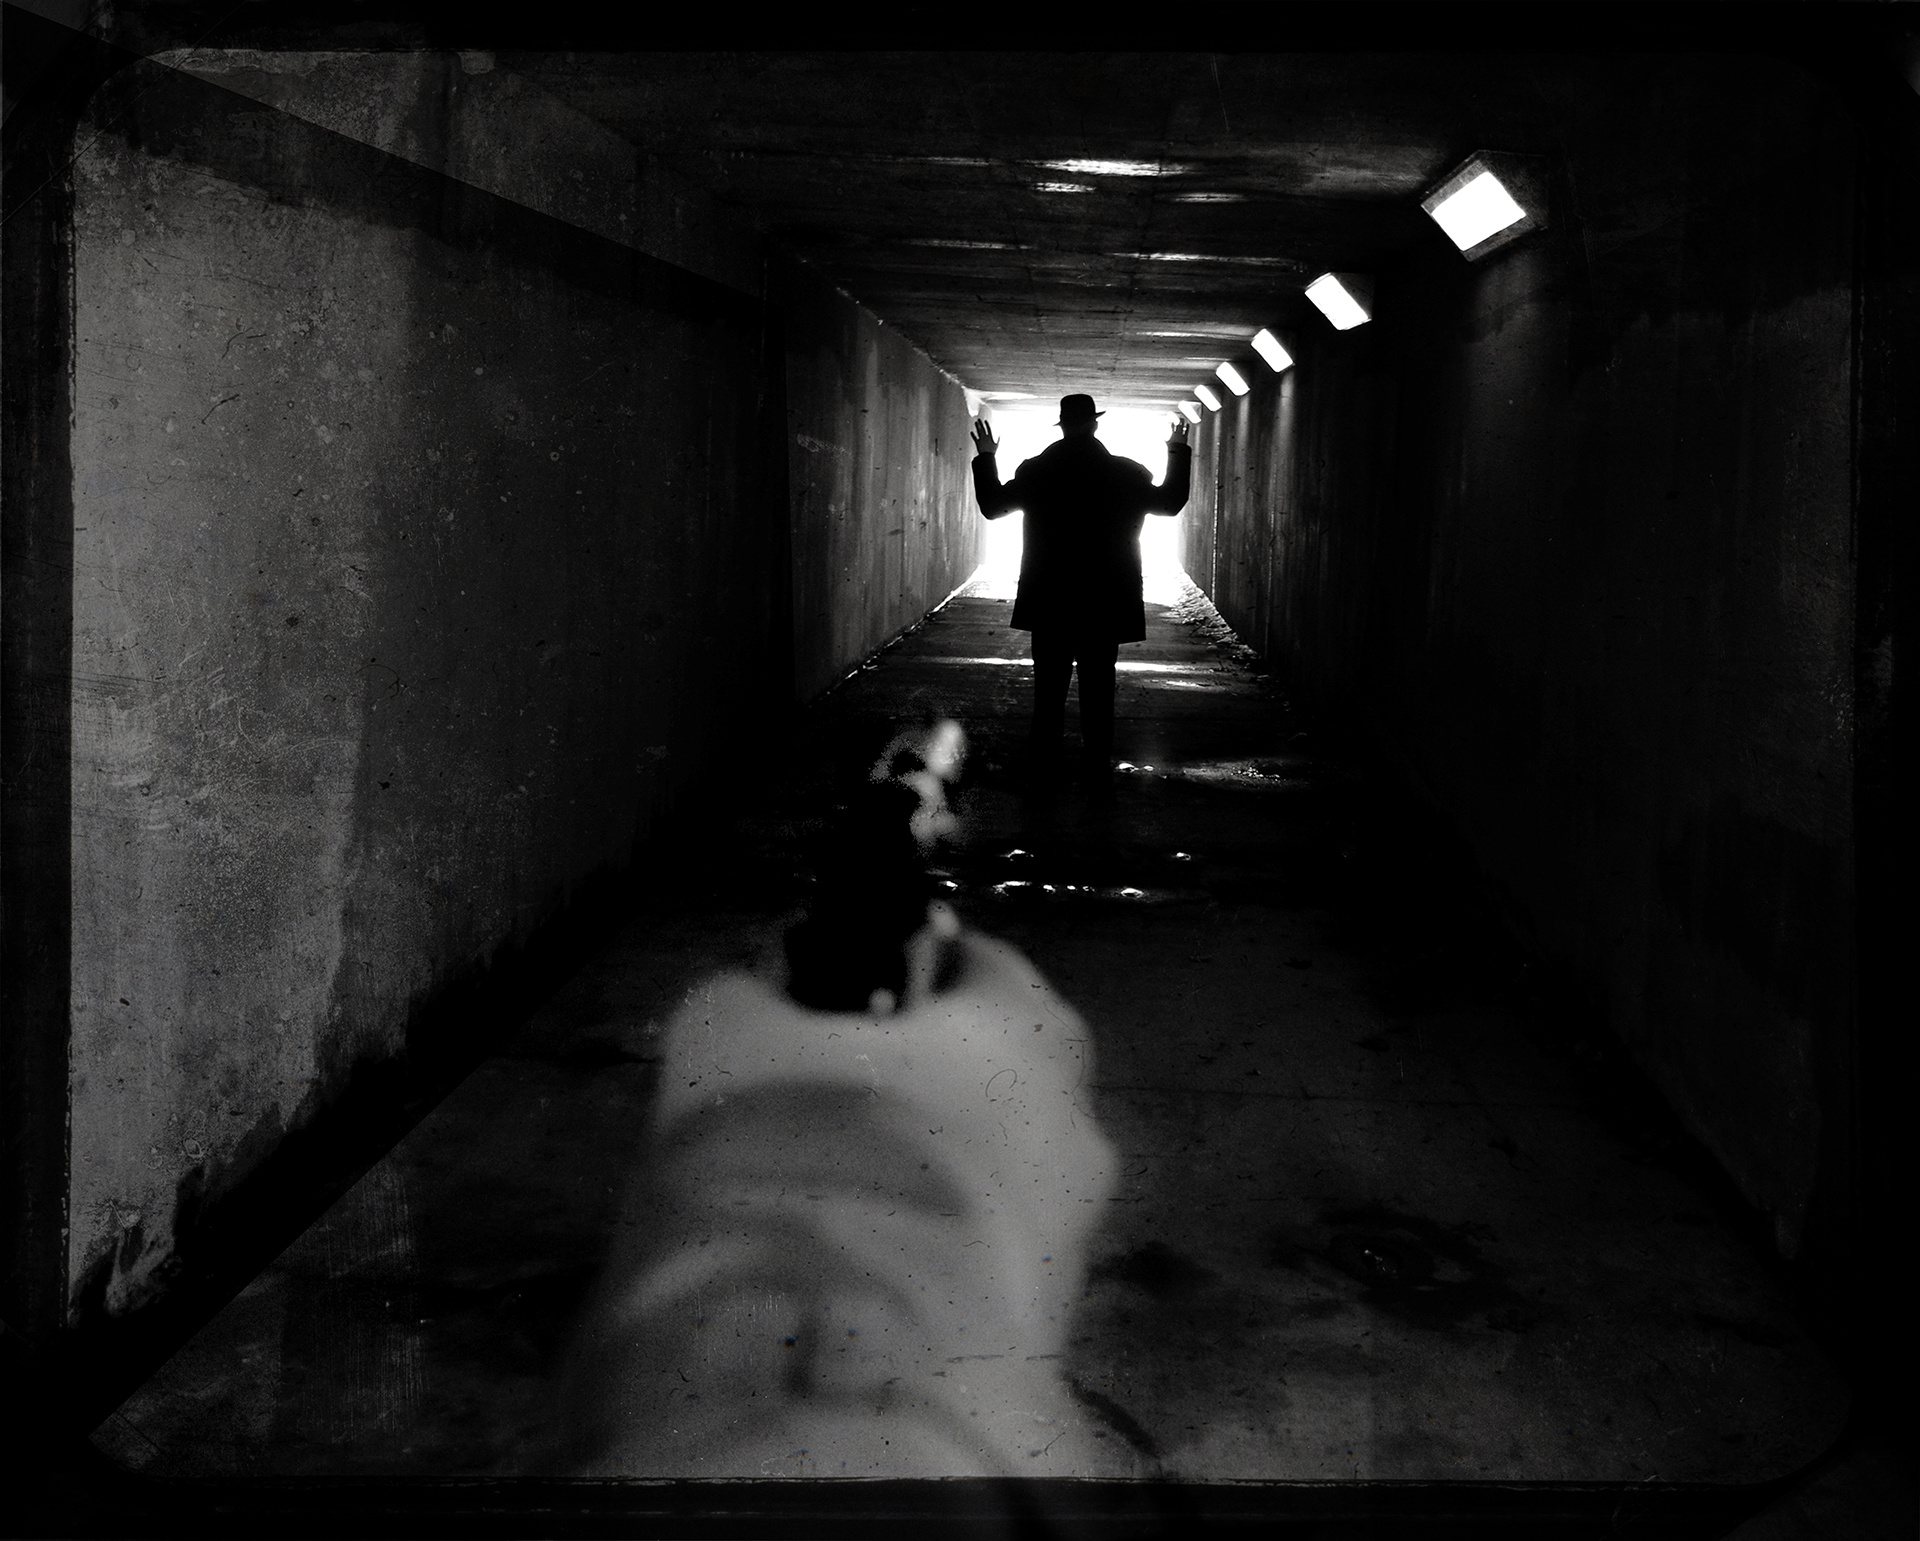 Betrayal in the Darkness (The Tunnel Series)